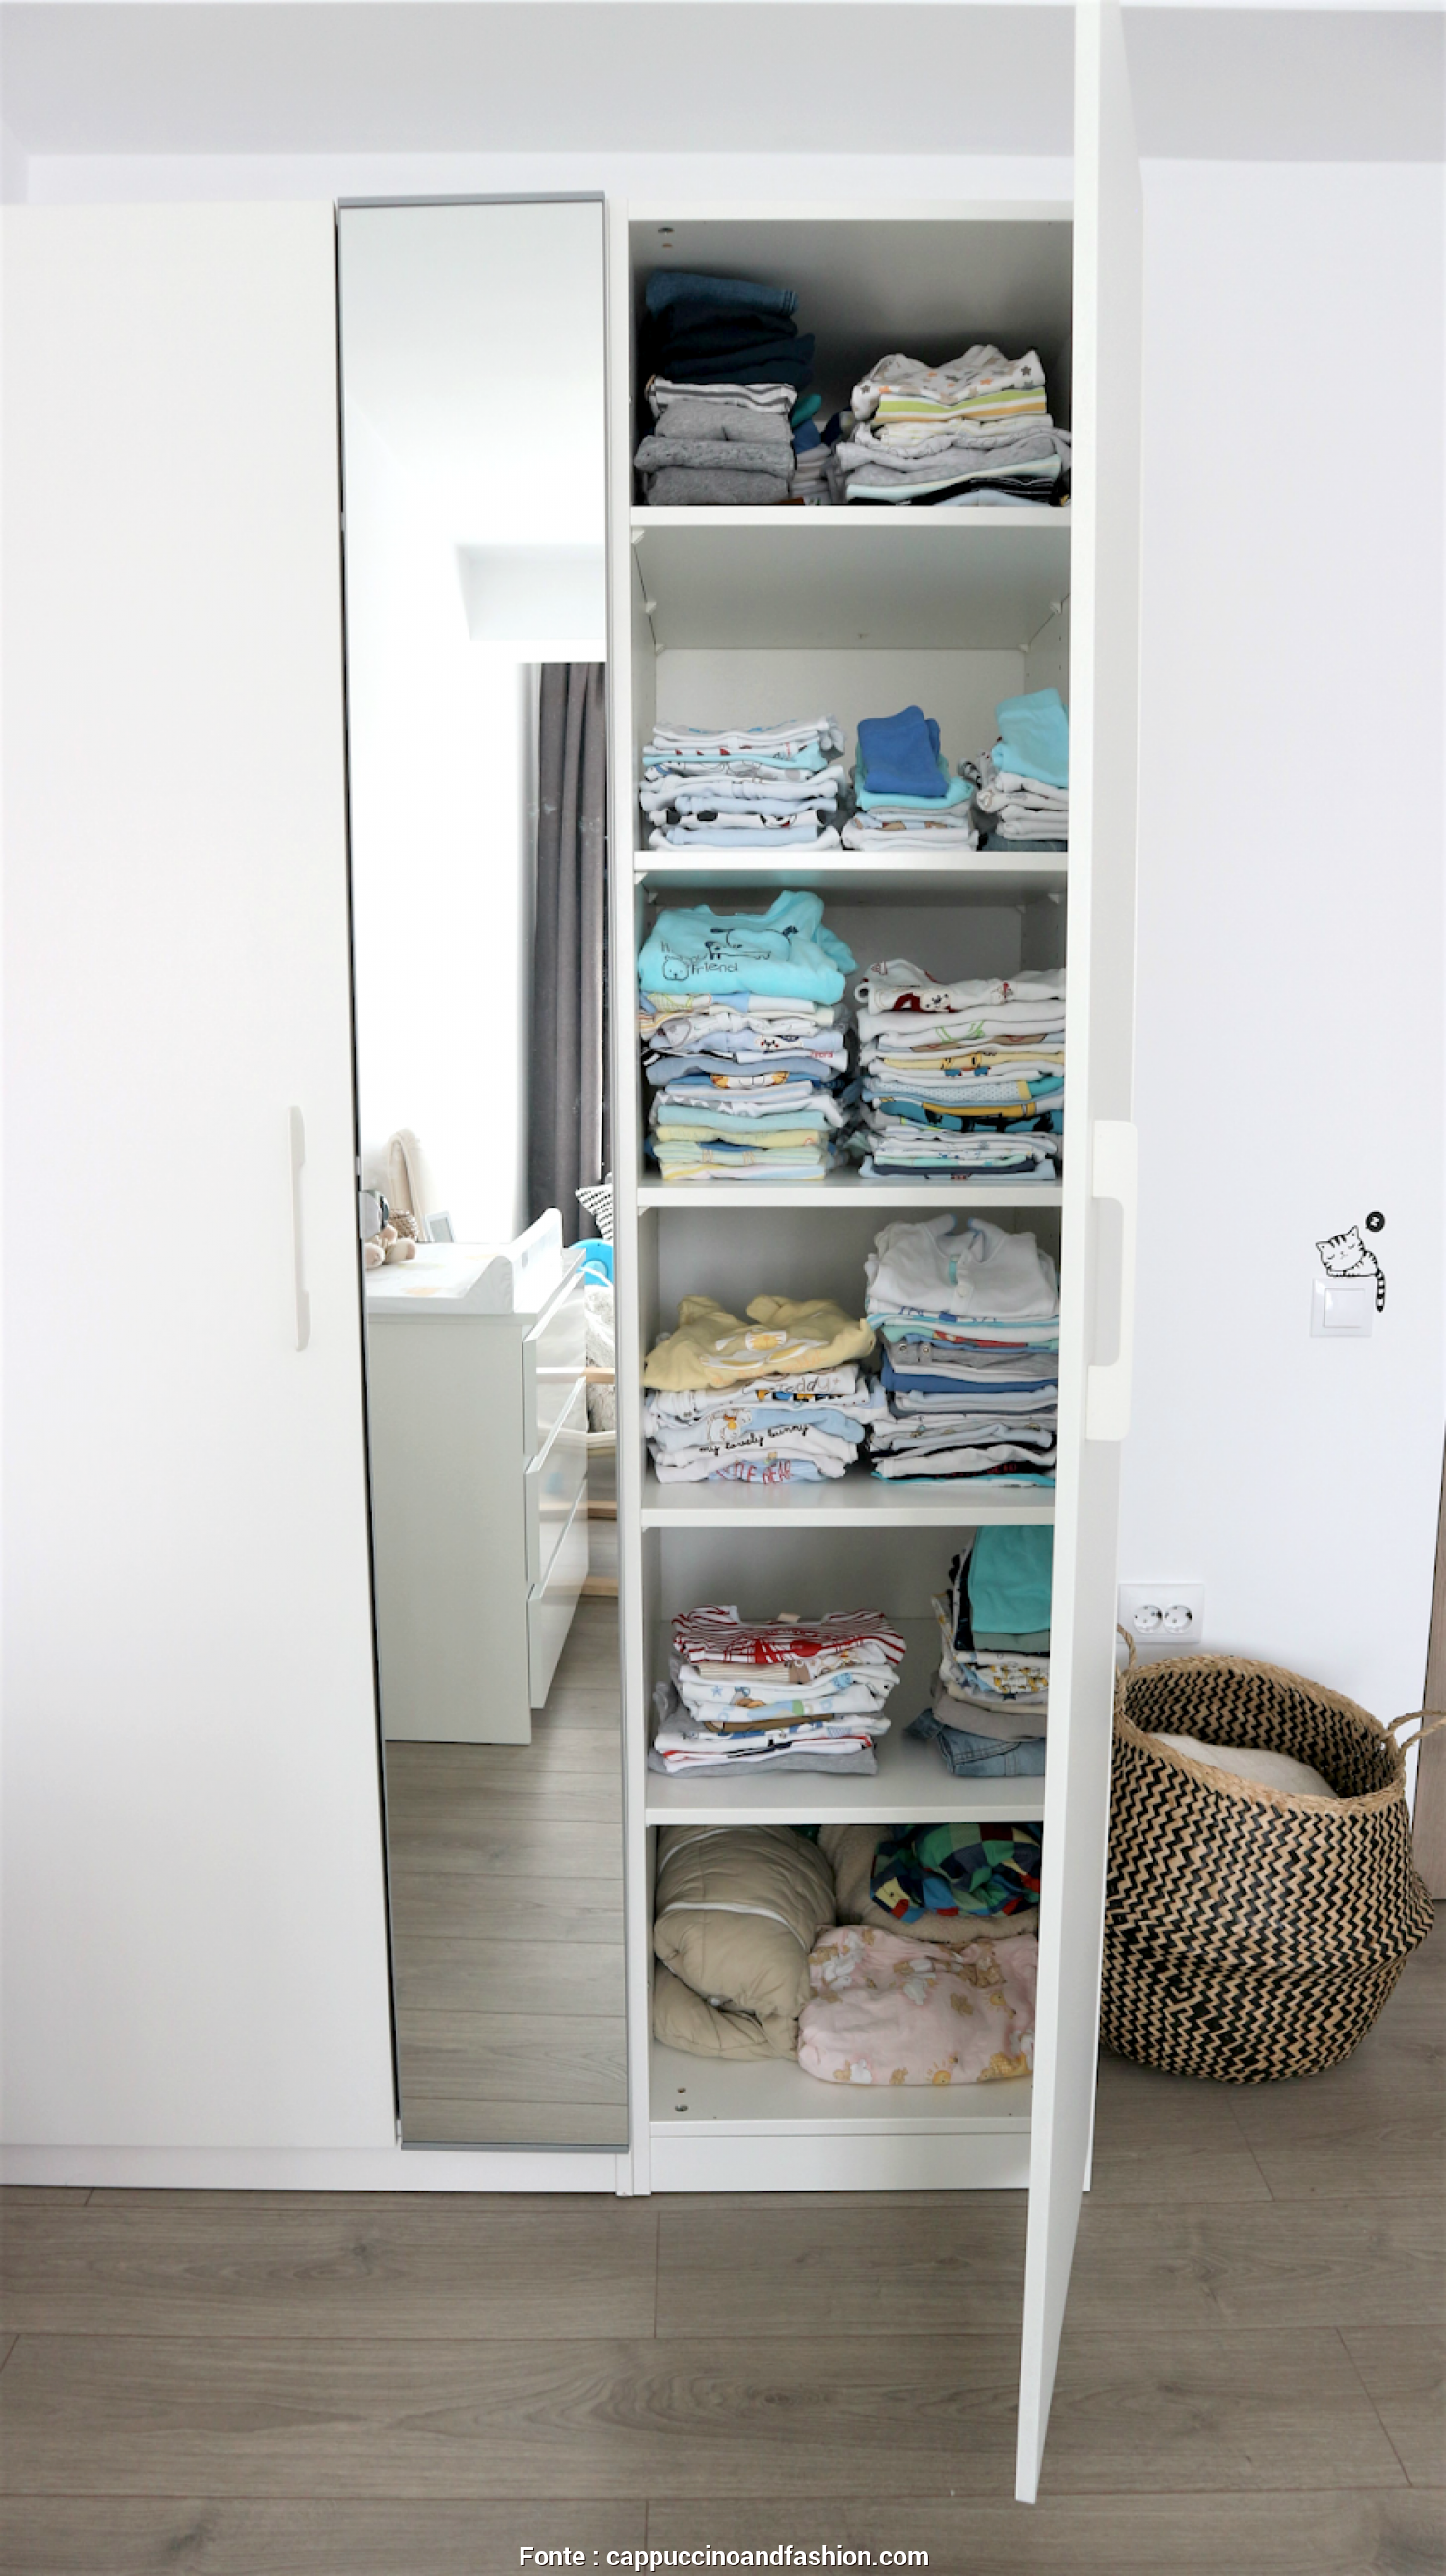 Ikea Asarum Maße, Delizioso ..., To, A Special Changing Table, Since We Knew We Would Probably Only, Up Using It A, Months. Instead, We, This MALM Dresser From Ikea And